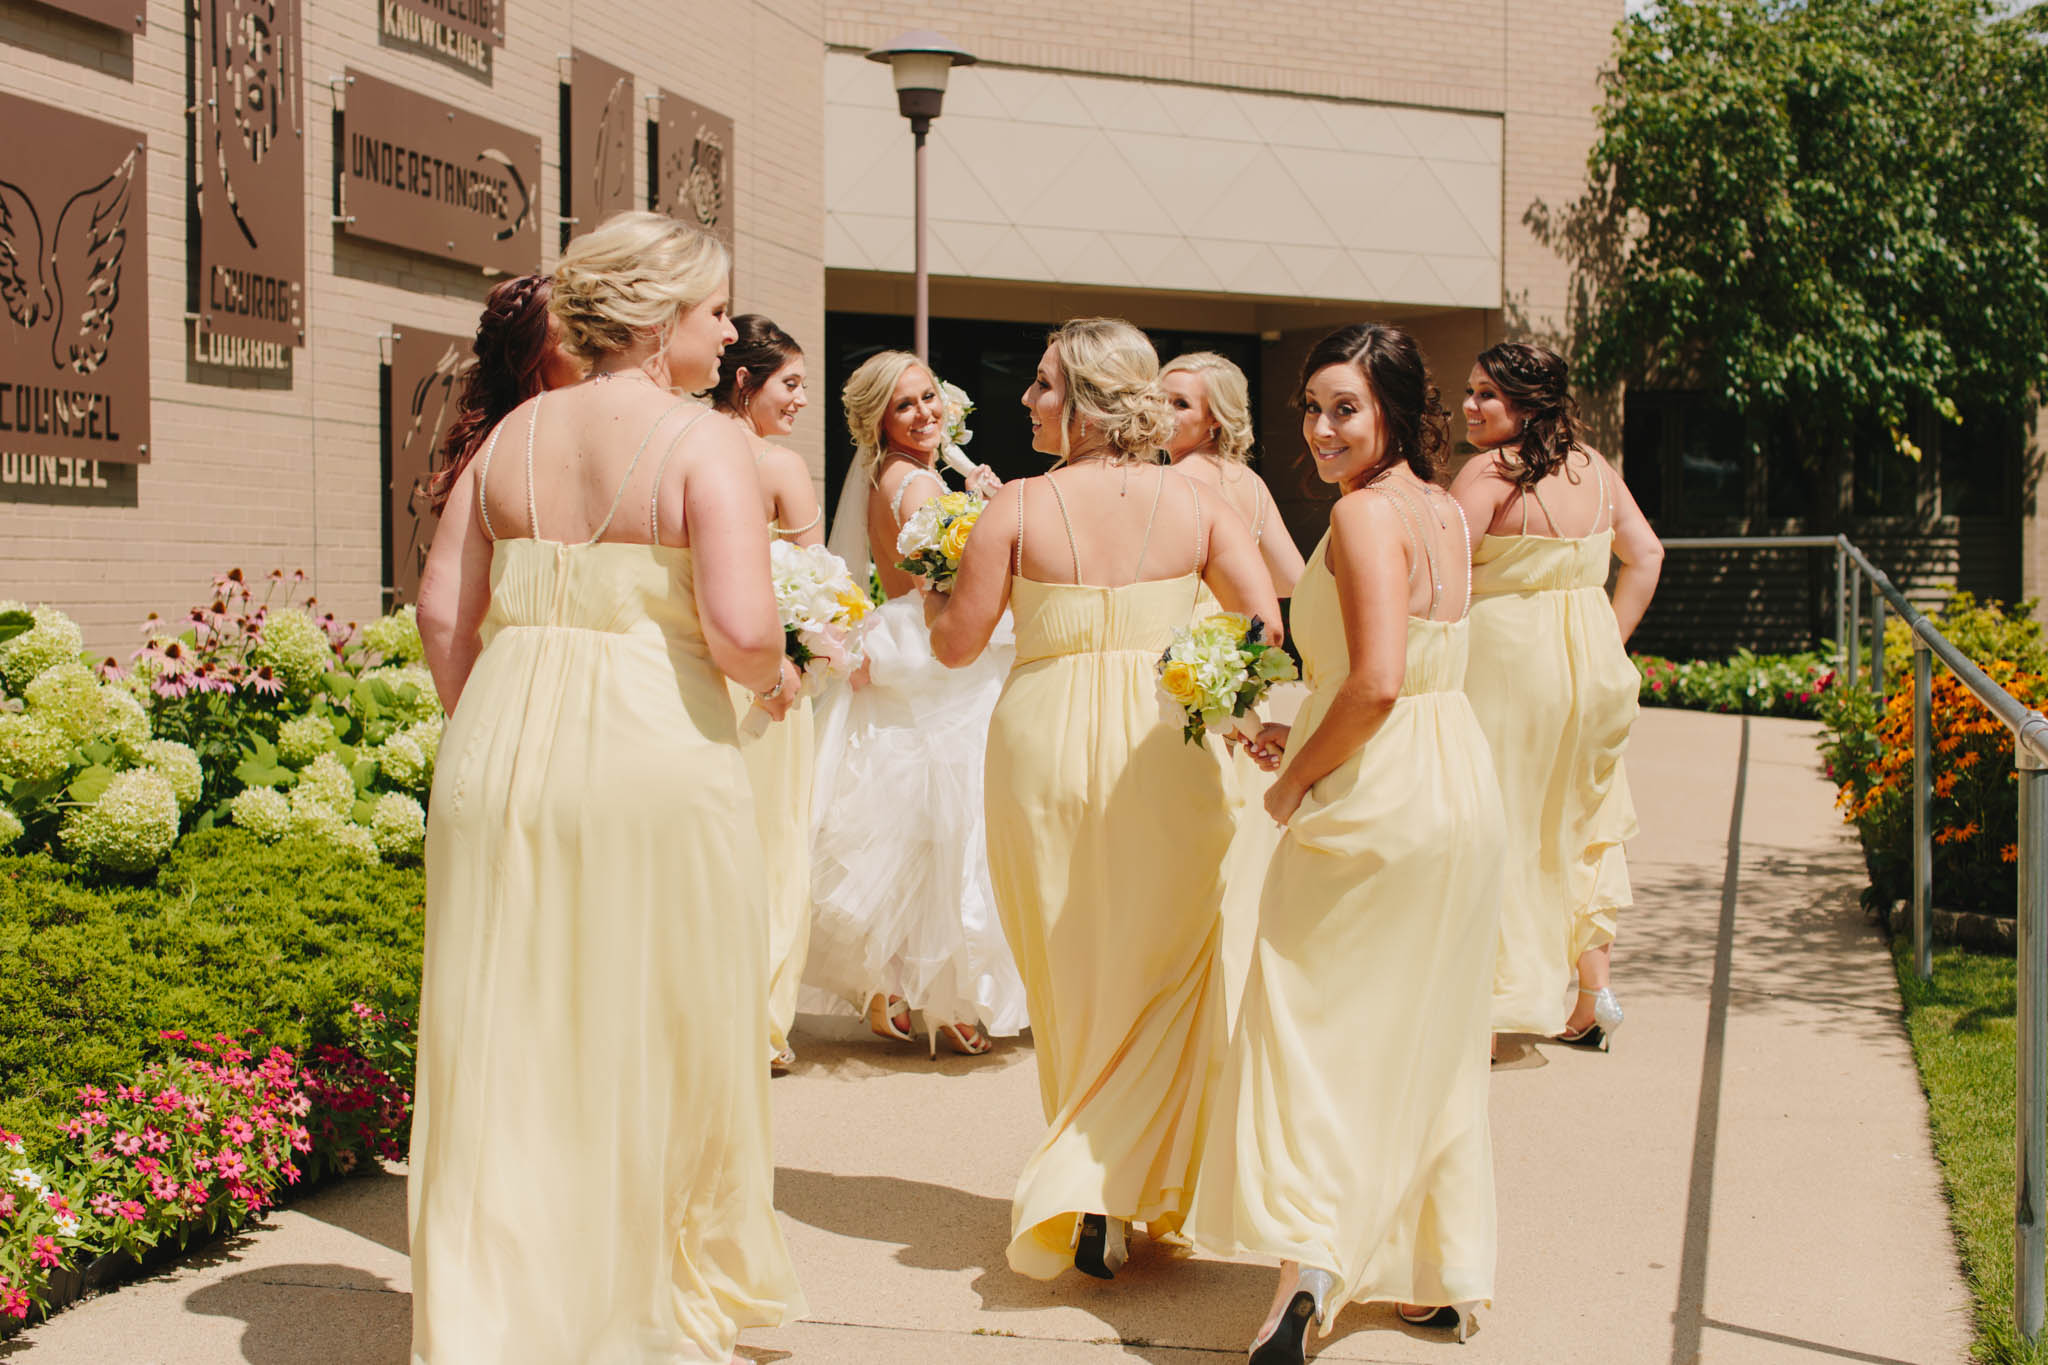 Jillian VanZytveld Photography - Grand Rapids Lifestyle Wedding Photography - 048.jpg